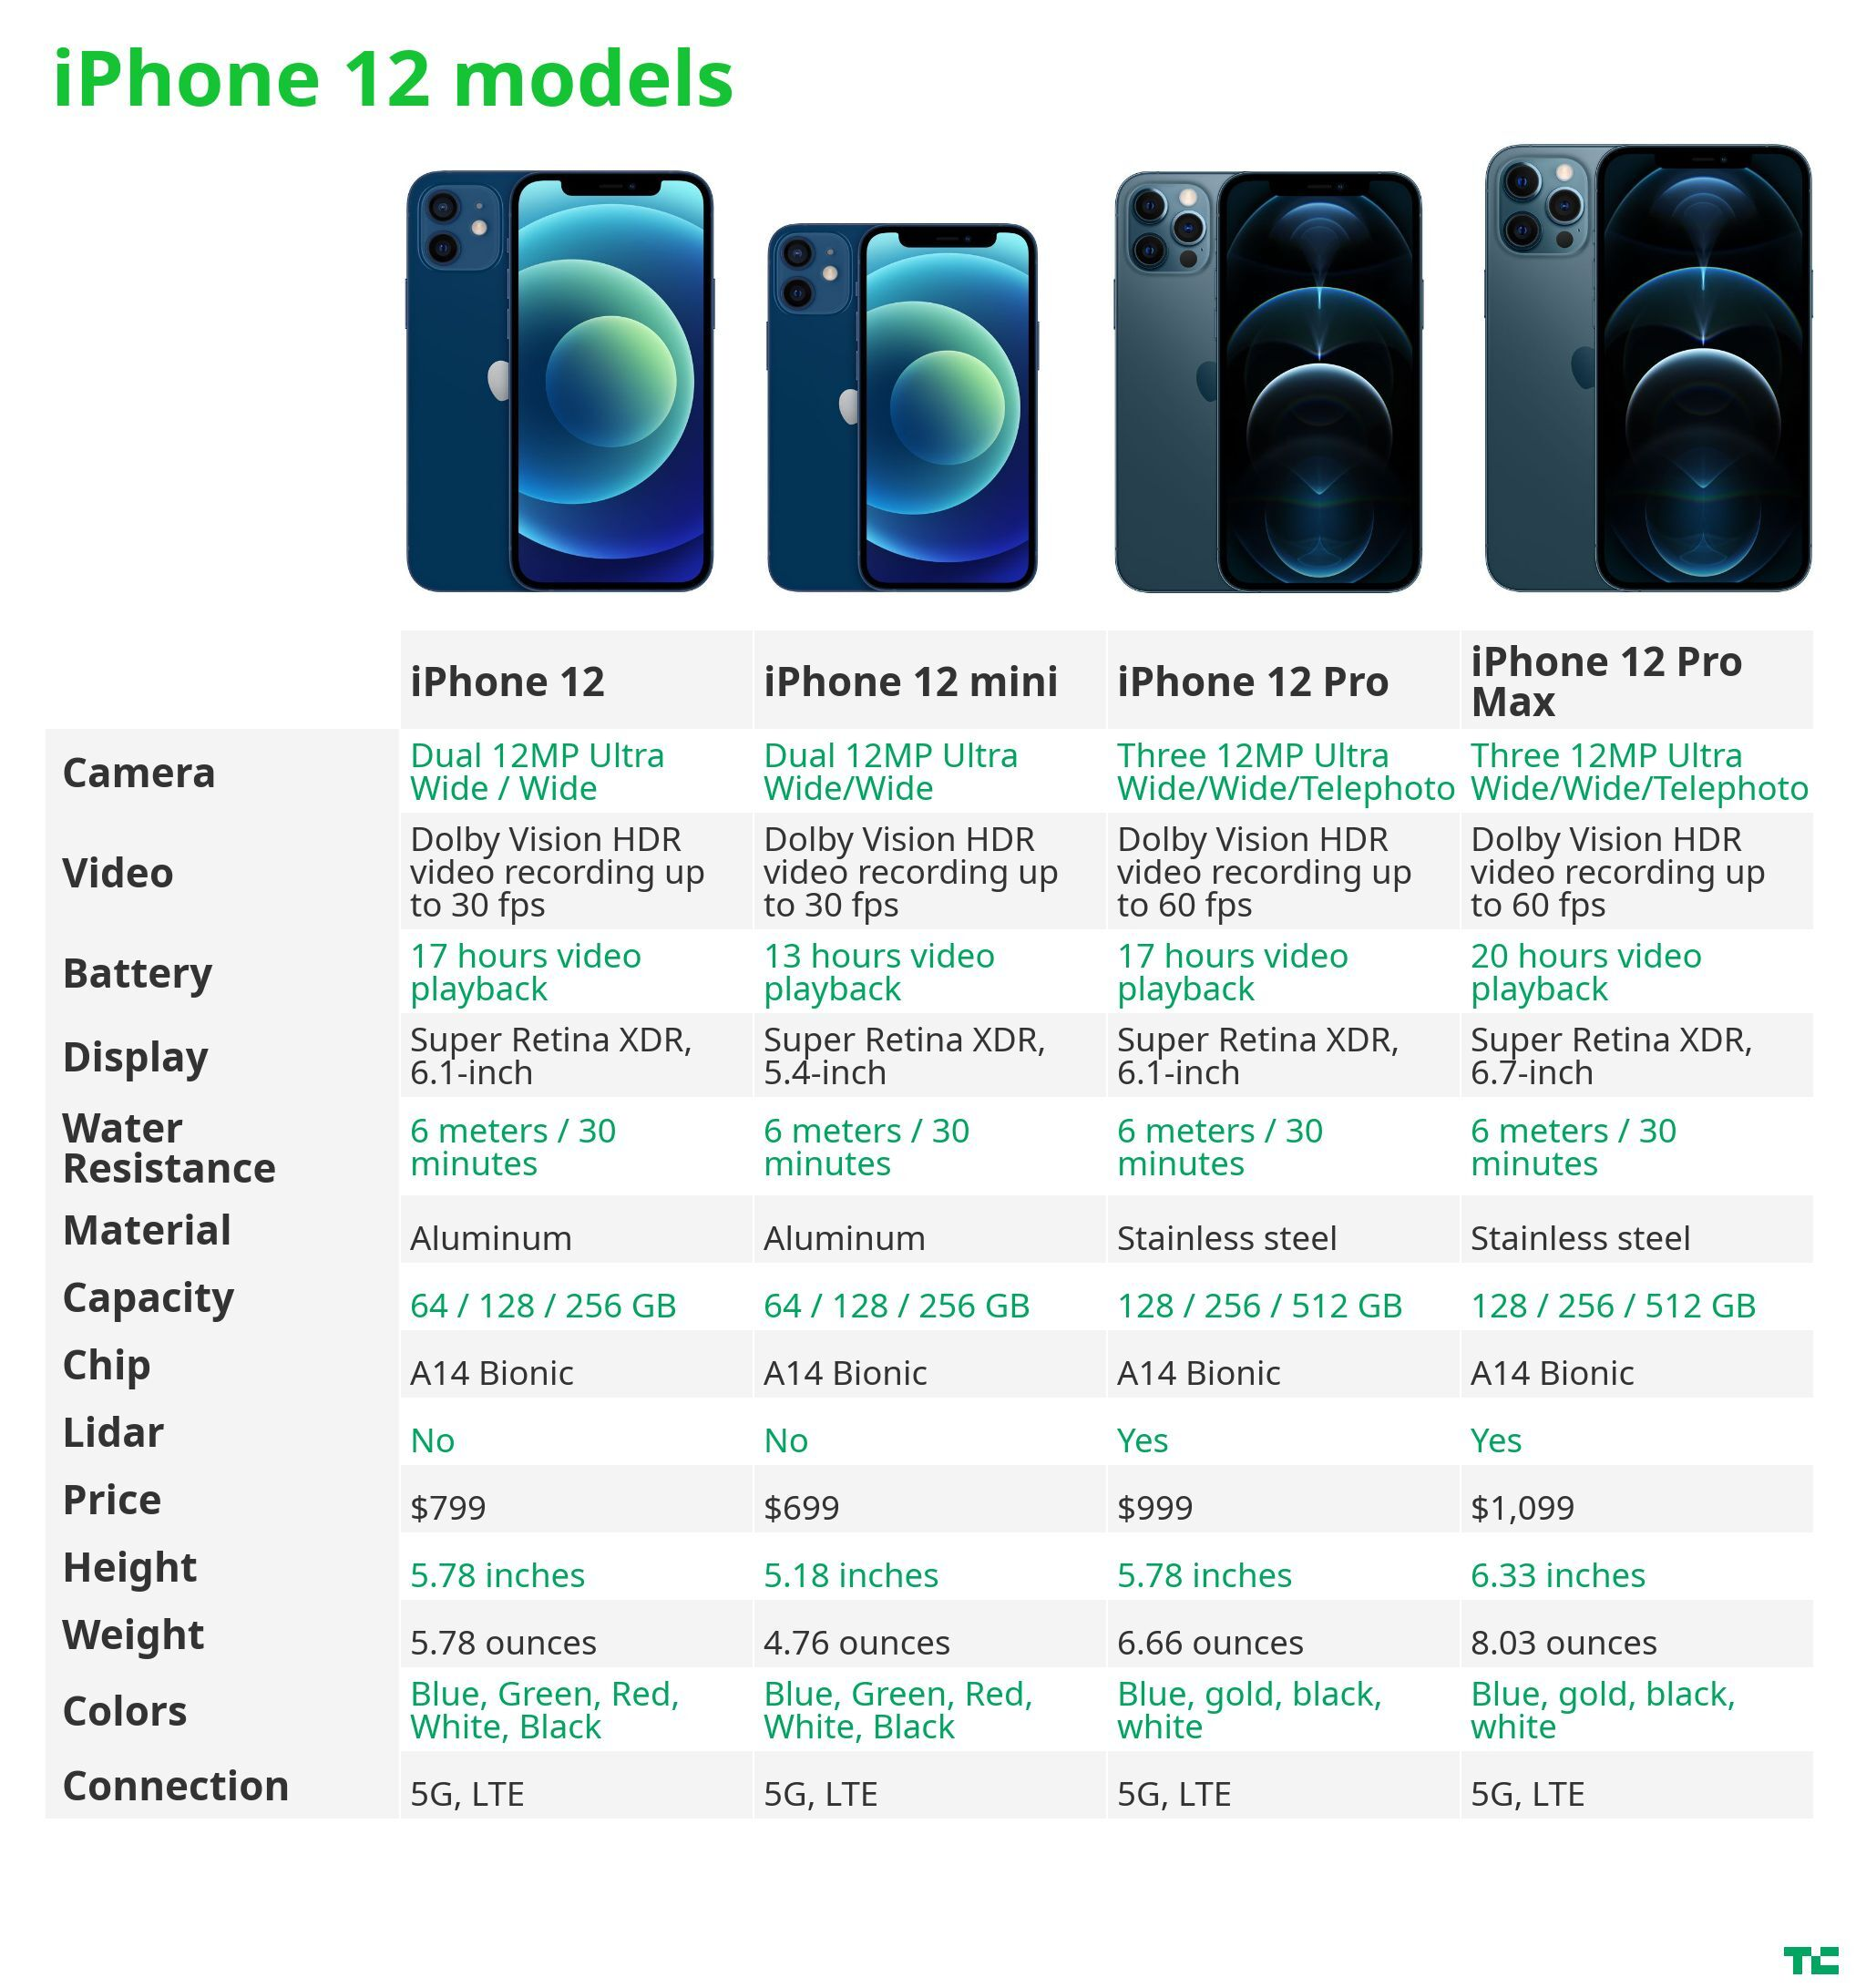 Apple's iPhone 12, 12 mini, 12 Pro and 12 Pro Max: what's the difference?